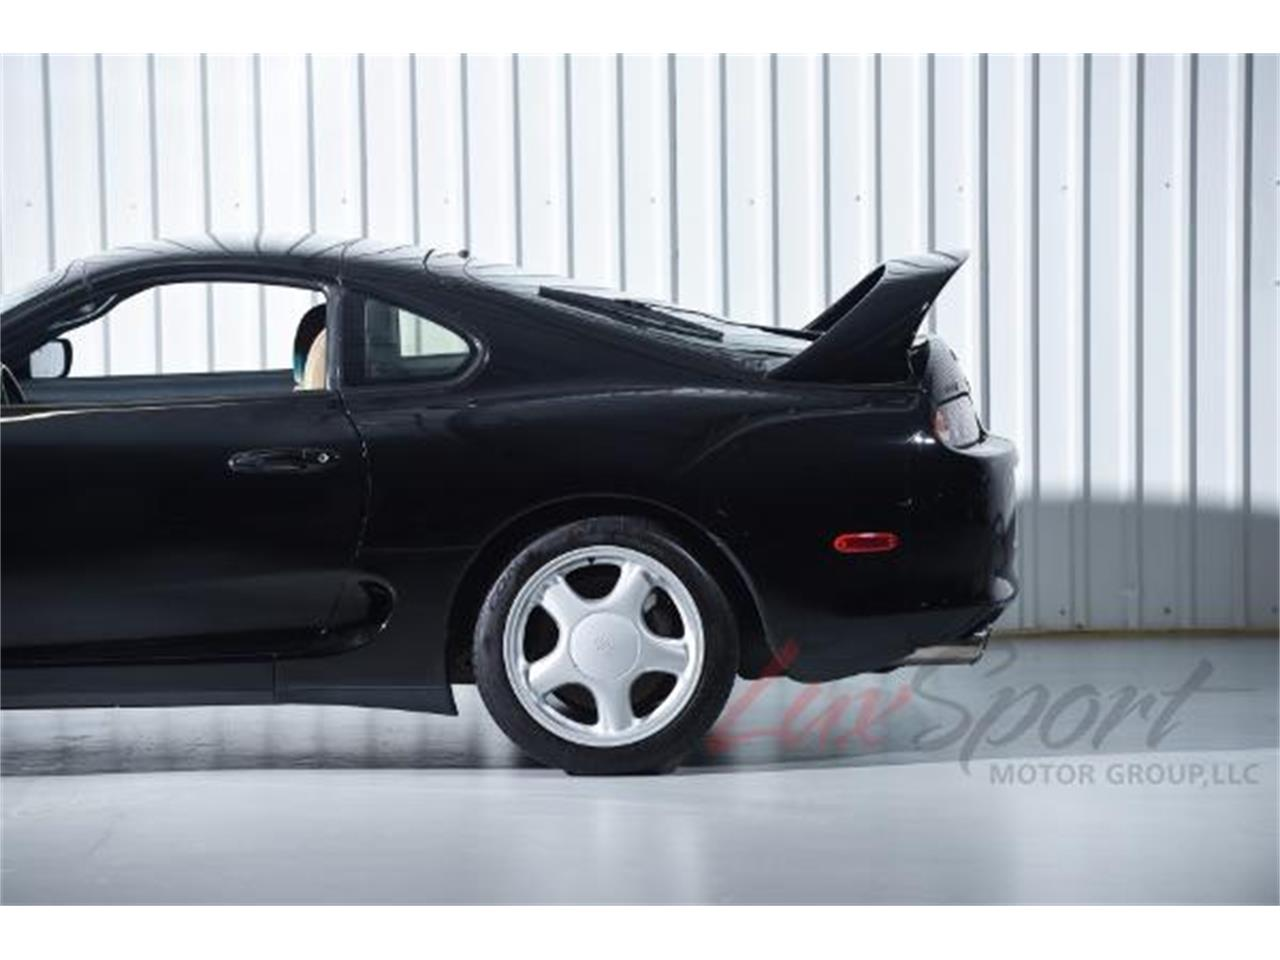 Large Picture of 1994 Toyota Supra located in New York Offered by LuxSport Motor Group, LLC - LRMX